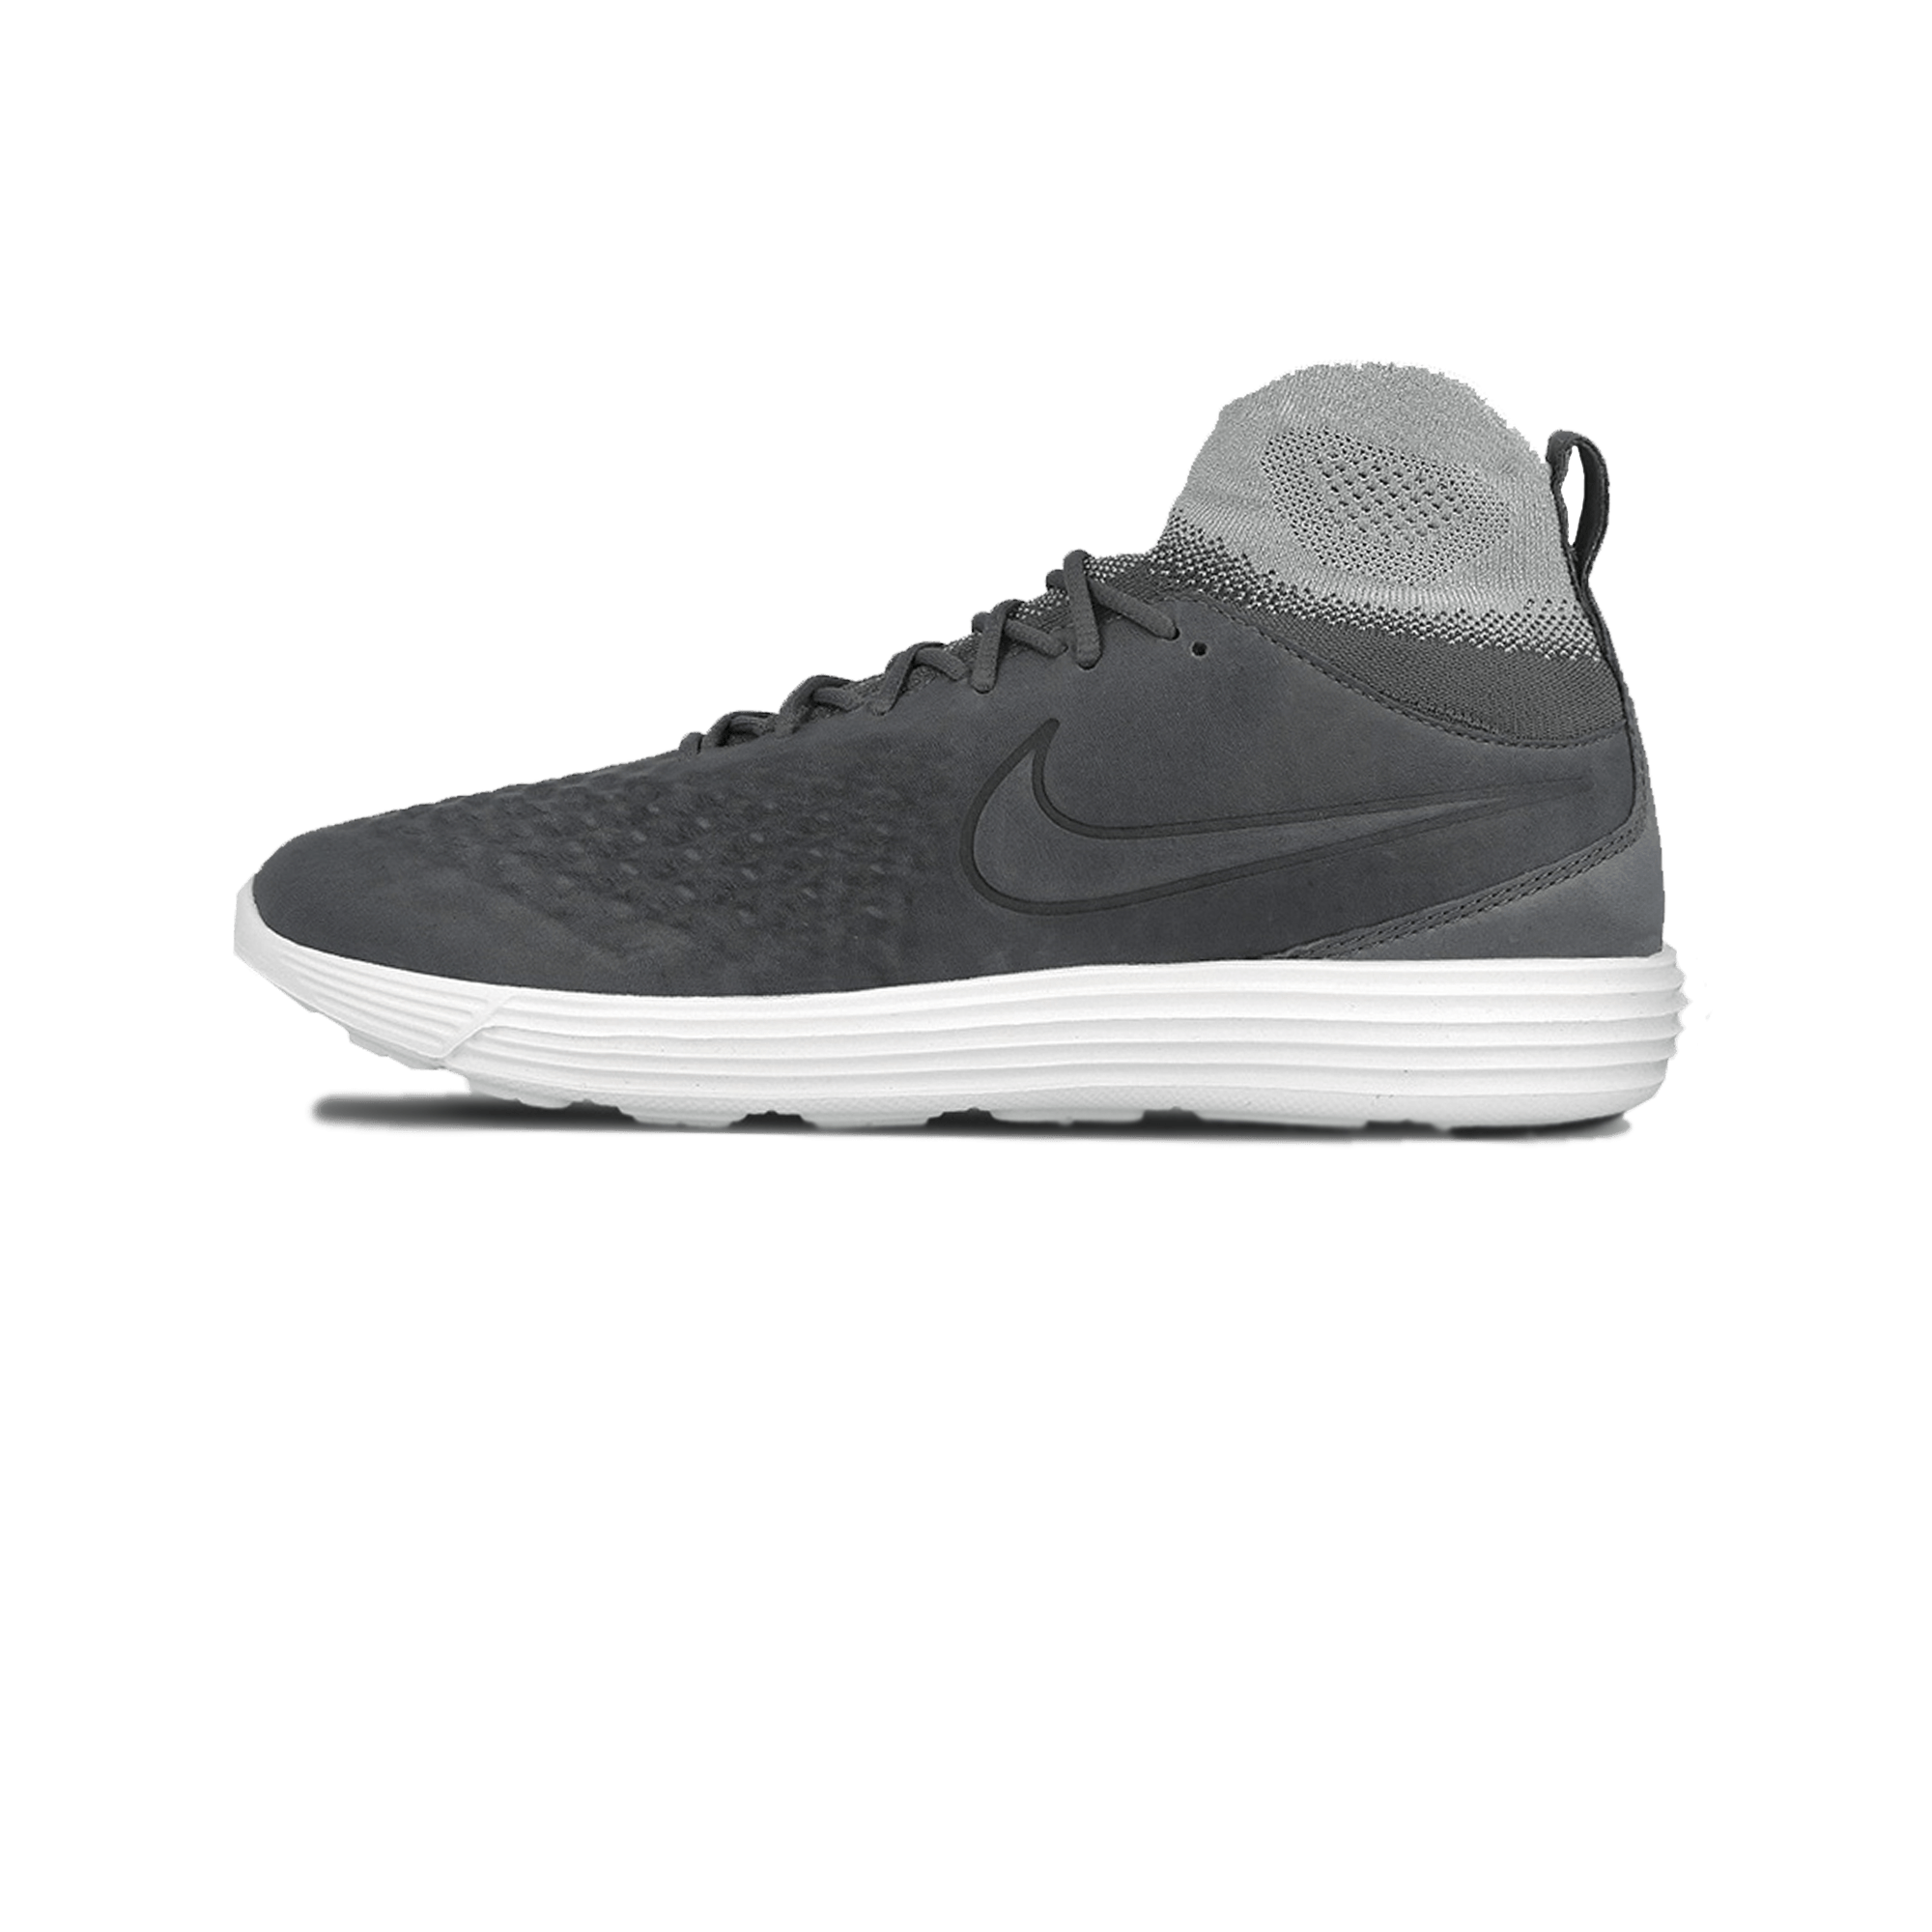 premium selection 4859a 8dcd7 Nike Lunar Magista II Flyknit dark grey - Men | Holypopstore.com